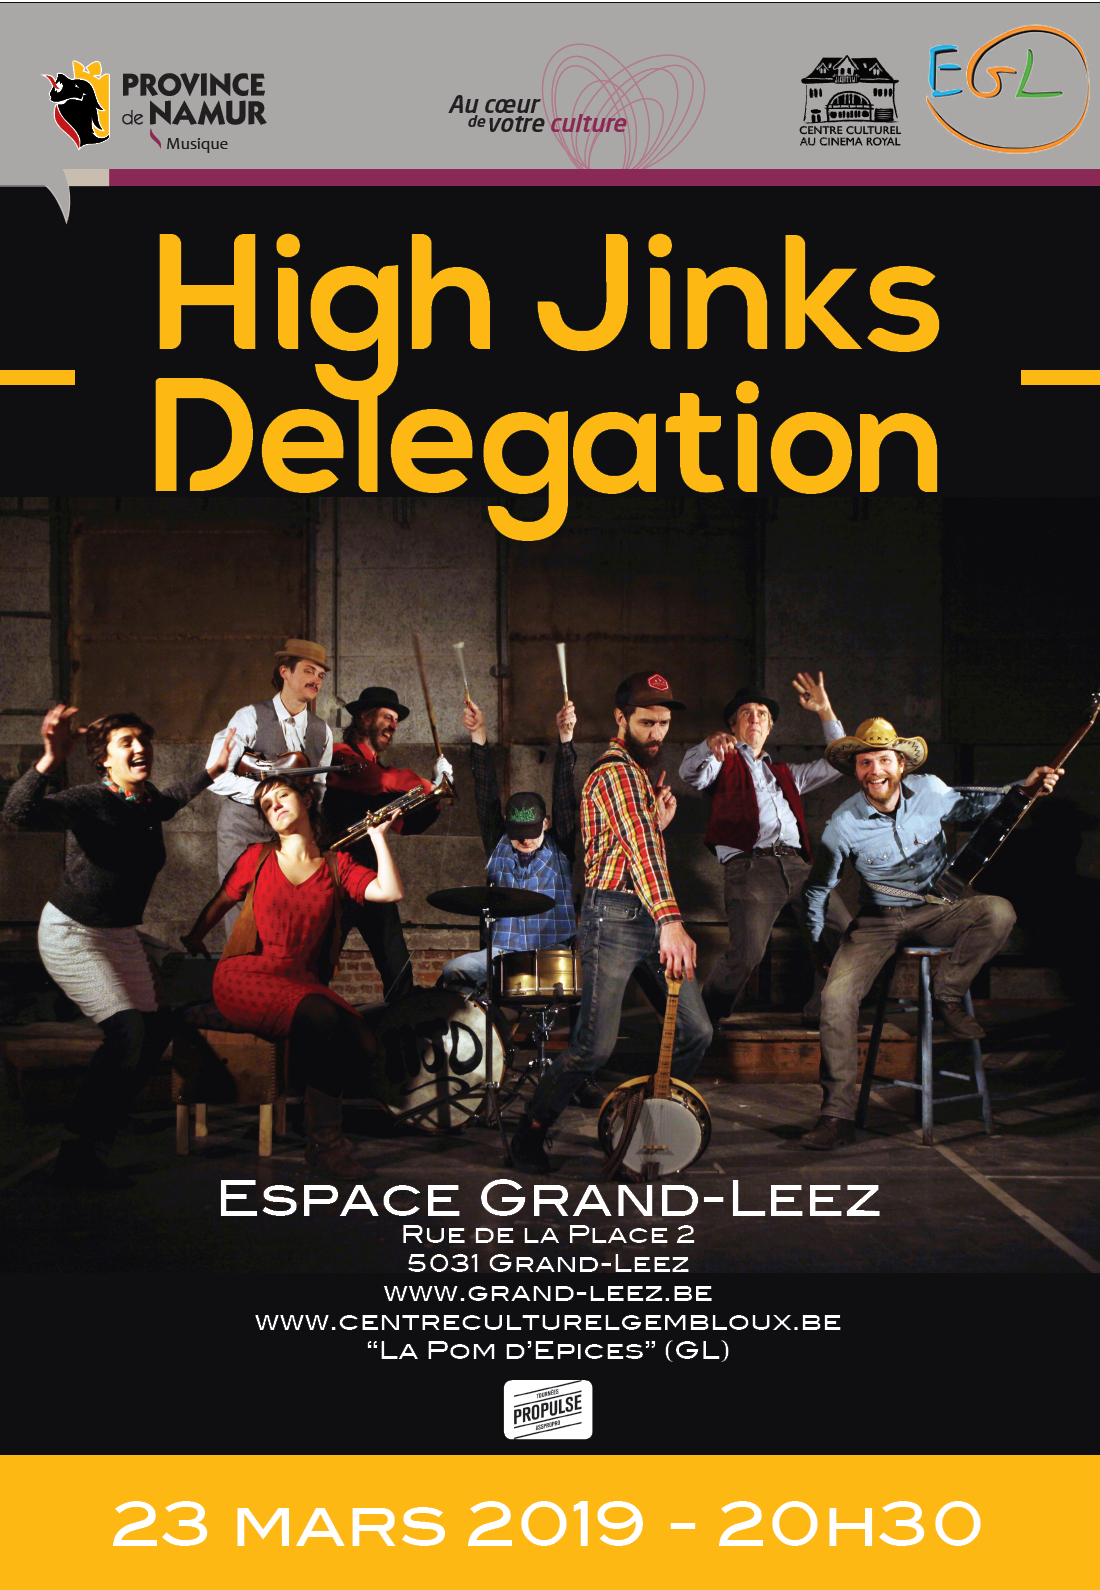 High Jinks Delegation